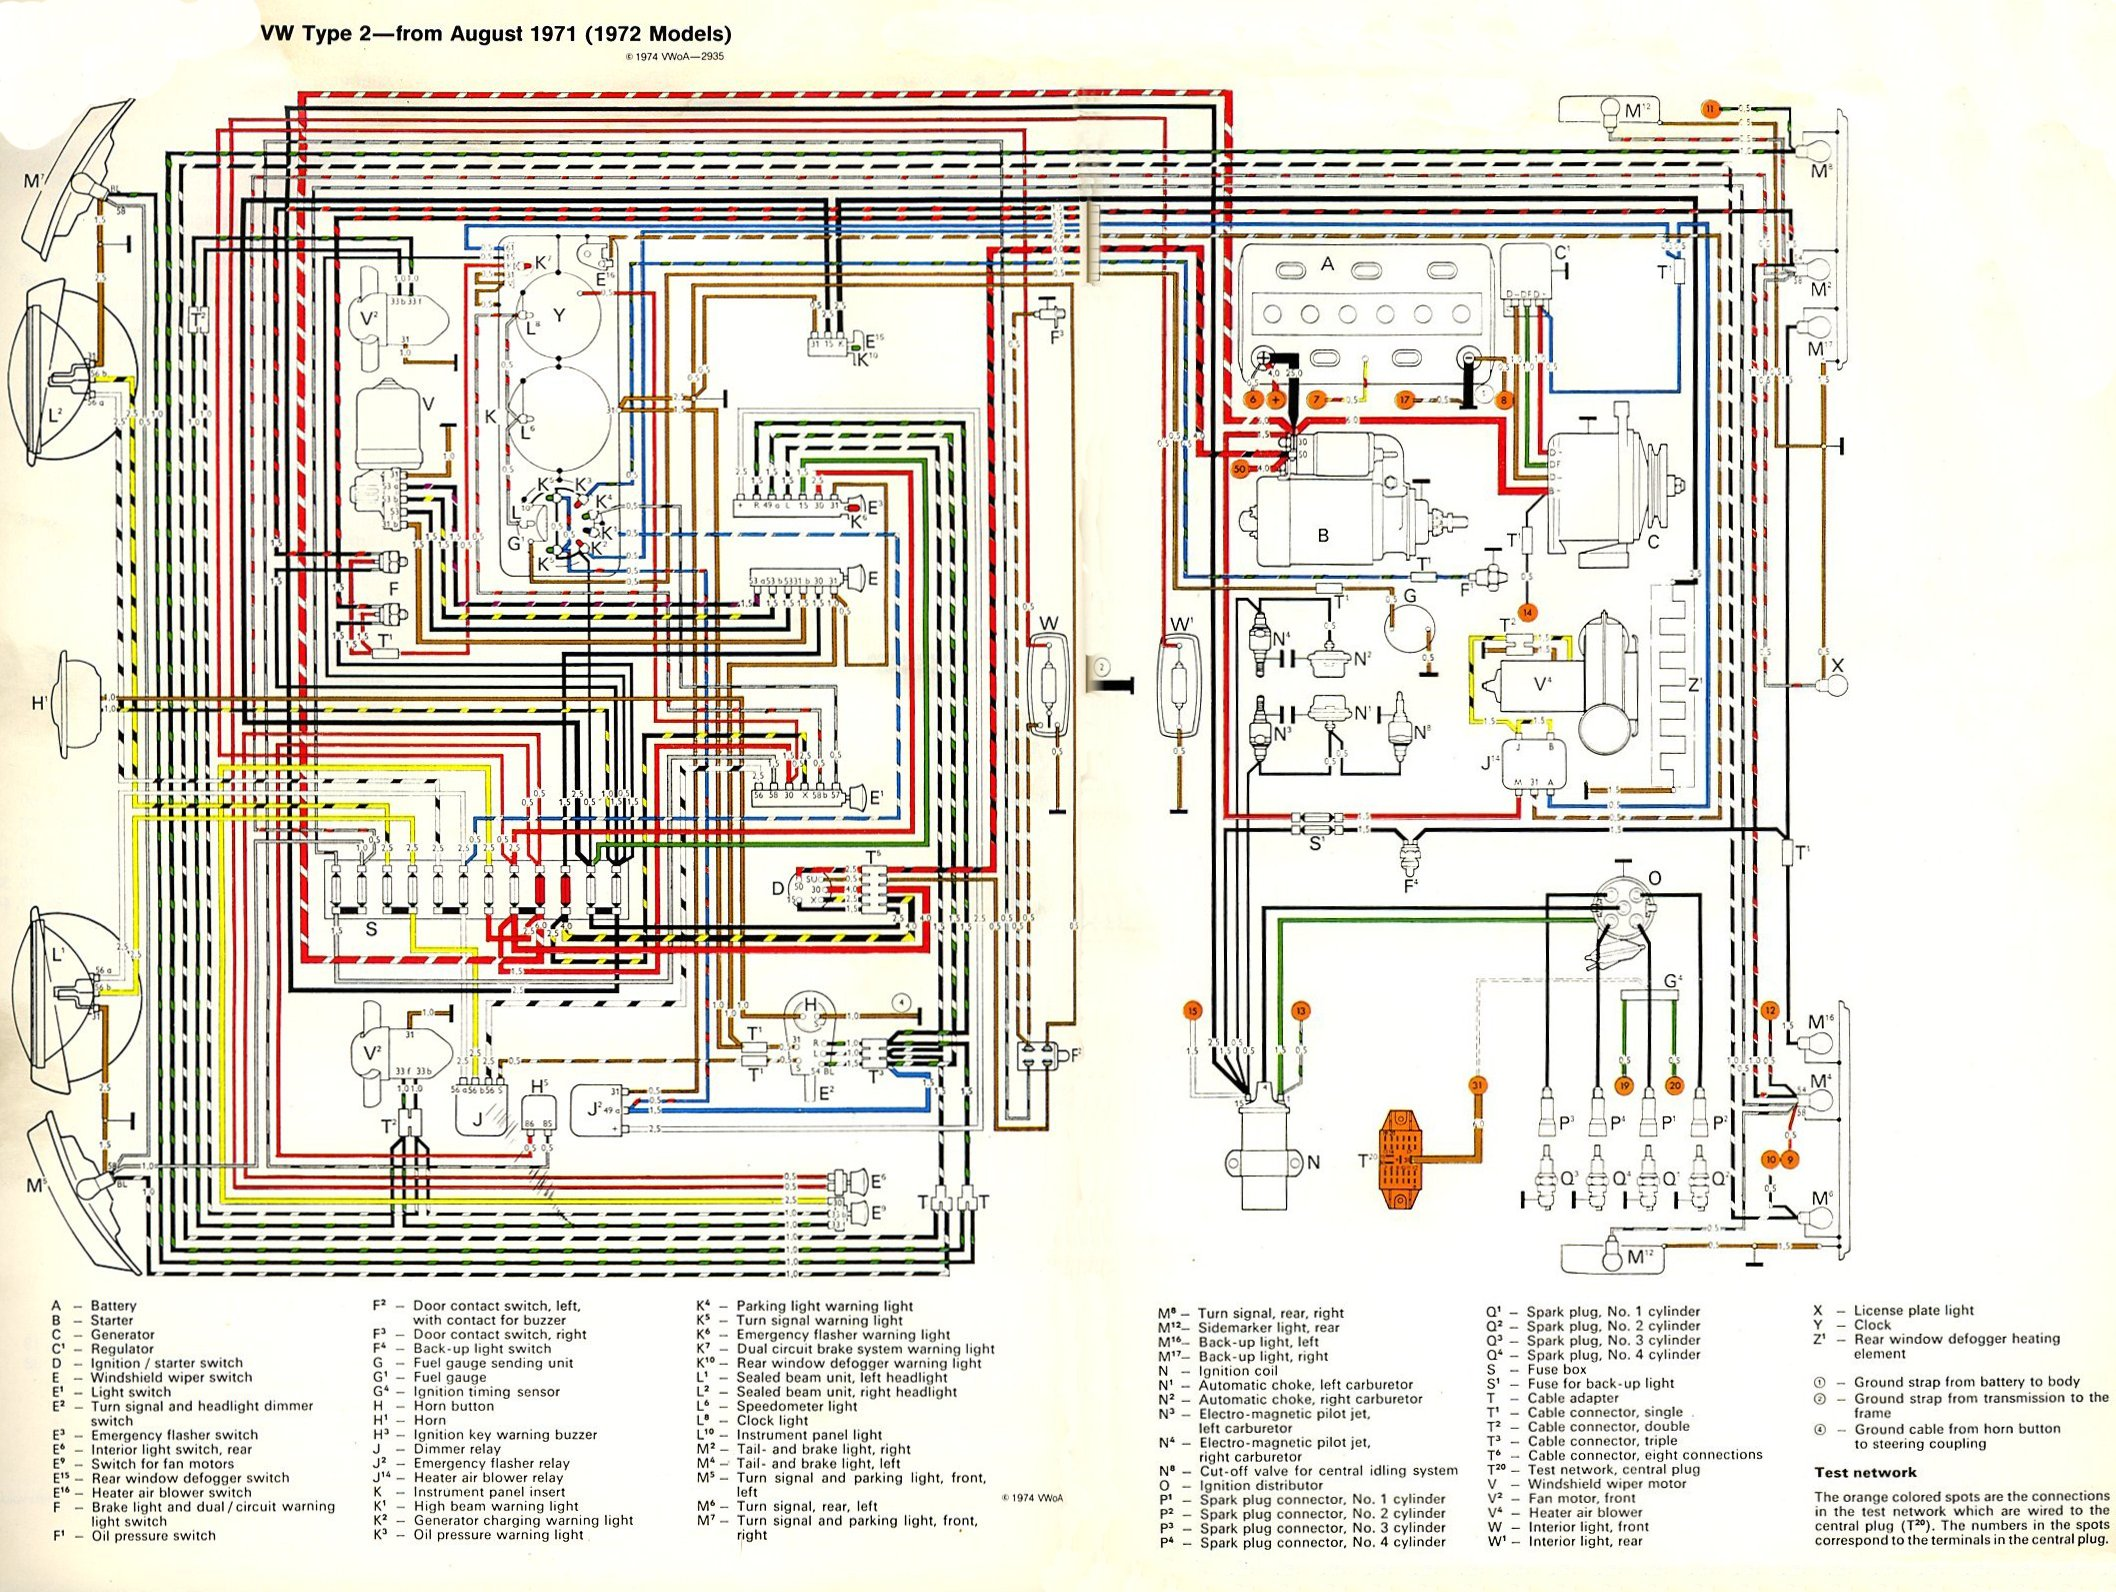 1972 chevy c10 fuse box diagram 1972 image wiring 1972 chevy pu ac wiring diag 1972 auto wiring diagram schematic on 1972 chevy c10 fuse